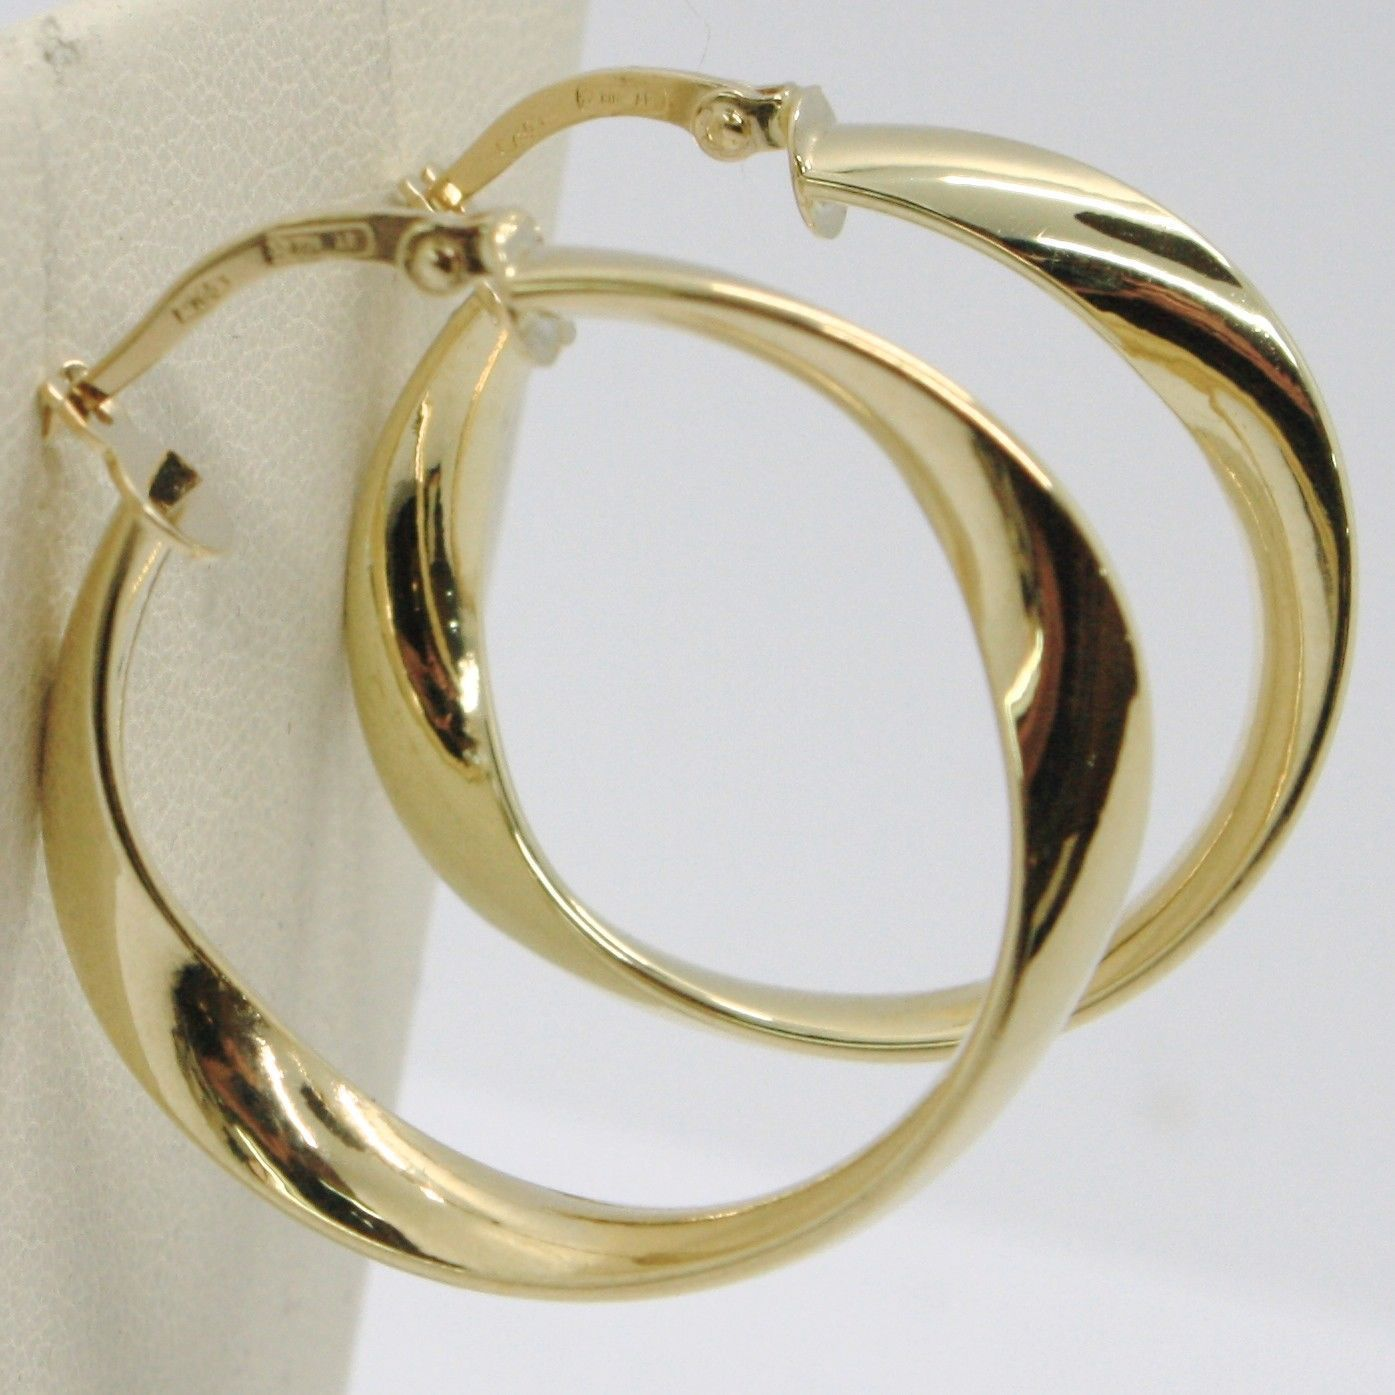 YELLOW GOLD EARRINGS 750 18K CIRCLES WAVY TRANSPARENCIES MADE IN ITALY